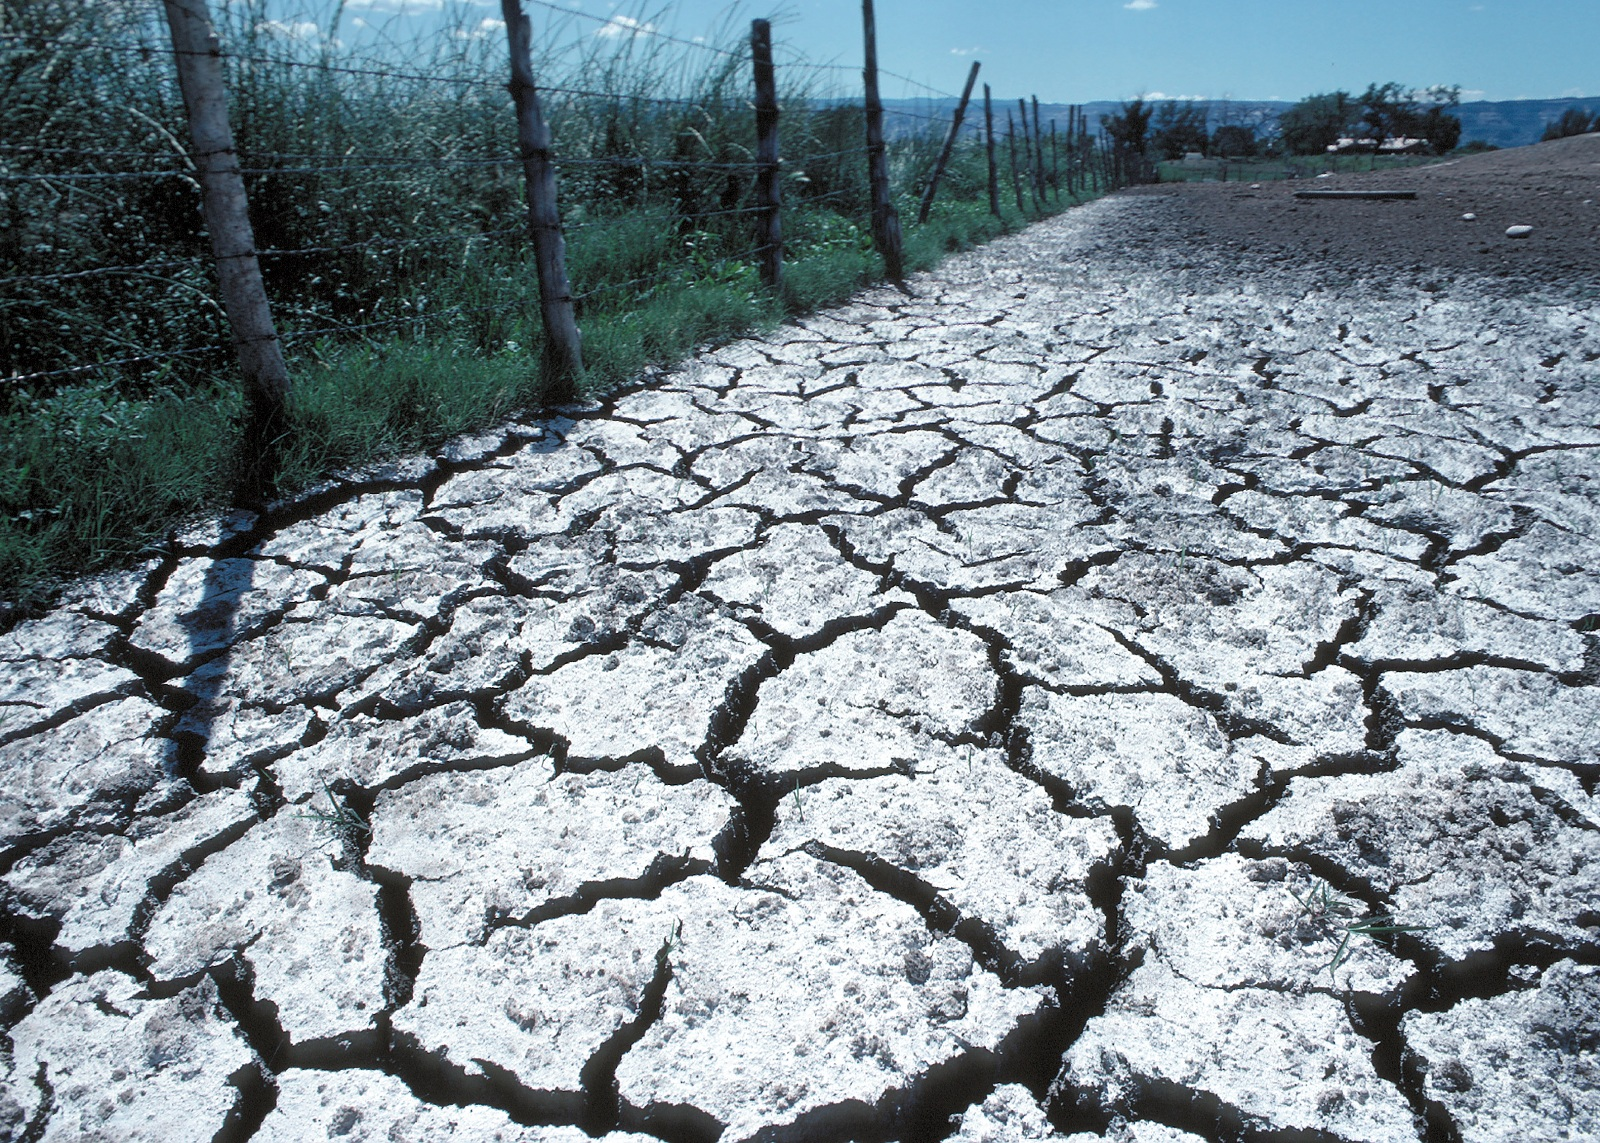 soil salination There are various practices that you can apply, in order to prevent soil salinity or manage salinity problems once they already occur.